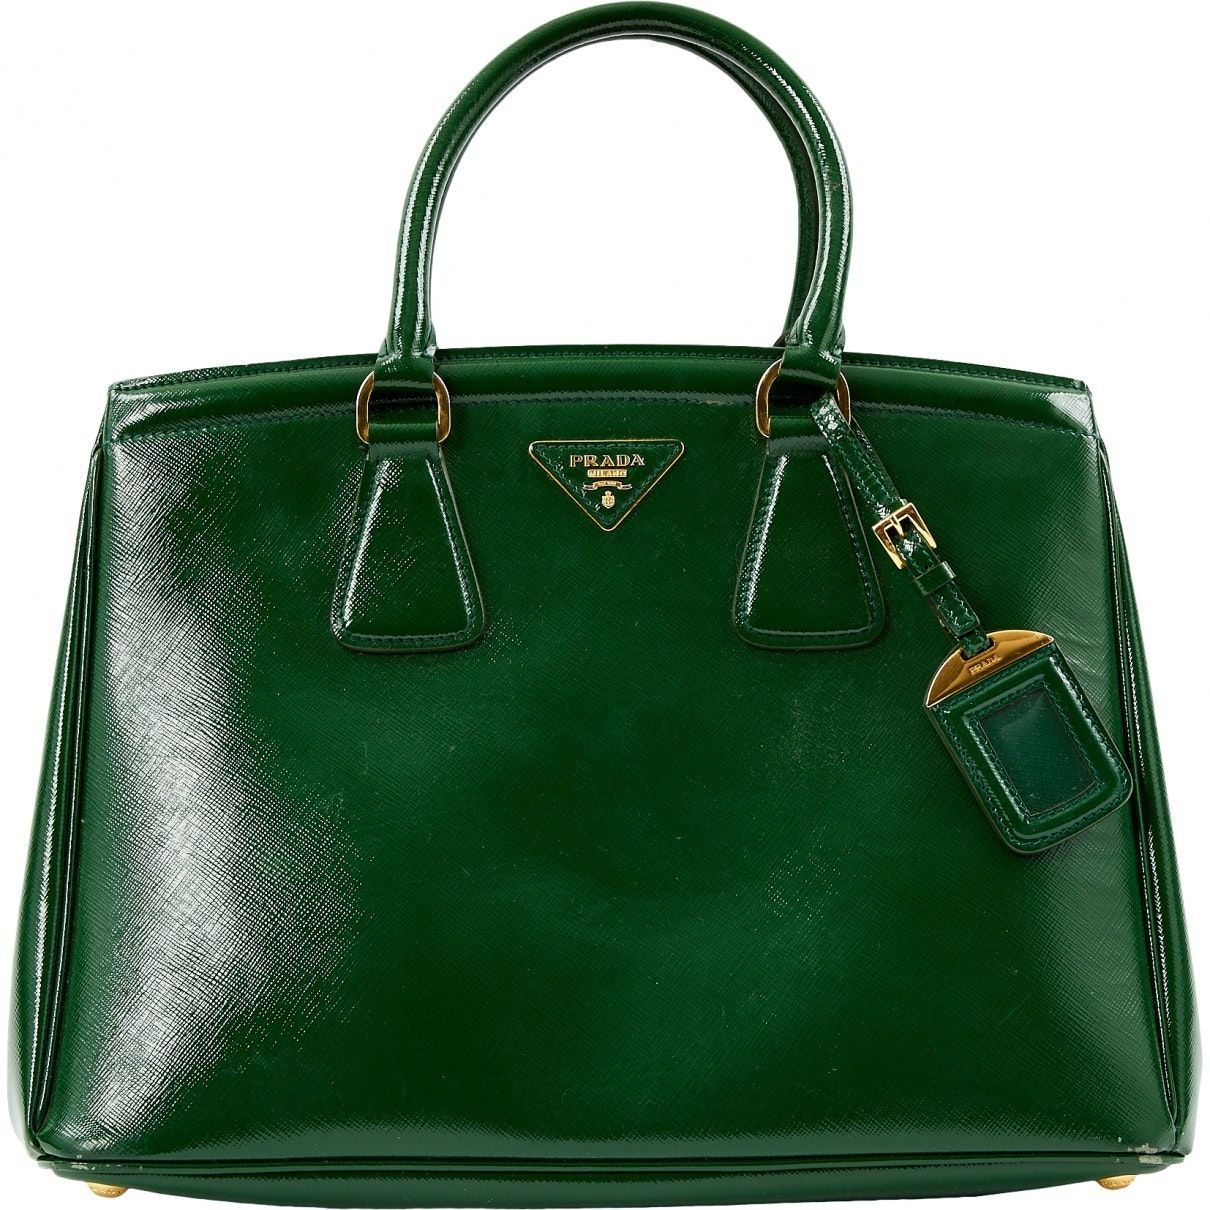 b7c264578056 green Plain Patent leather PRADA Handbag - Vestiaire Collective   patentleatherhandbags